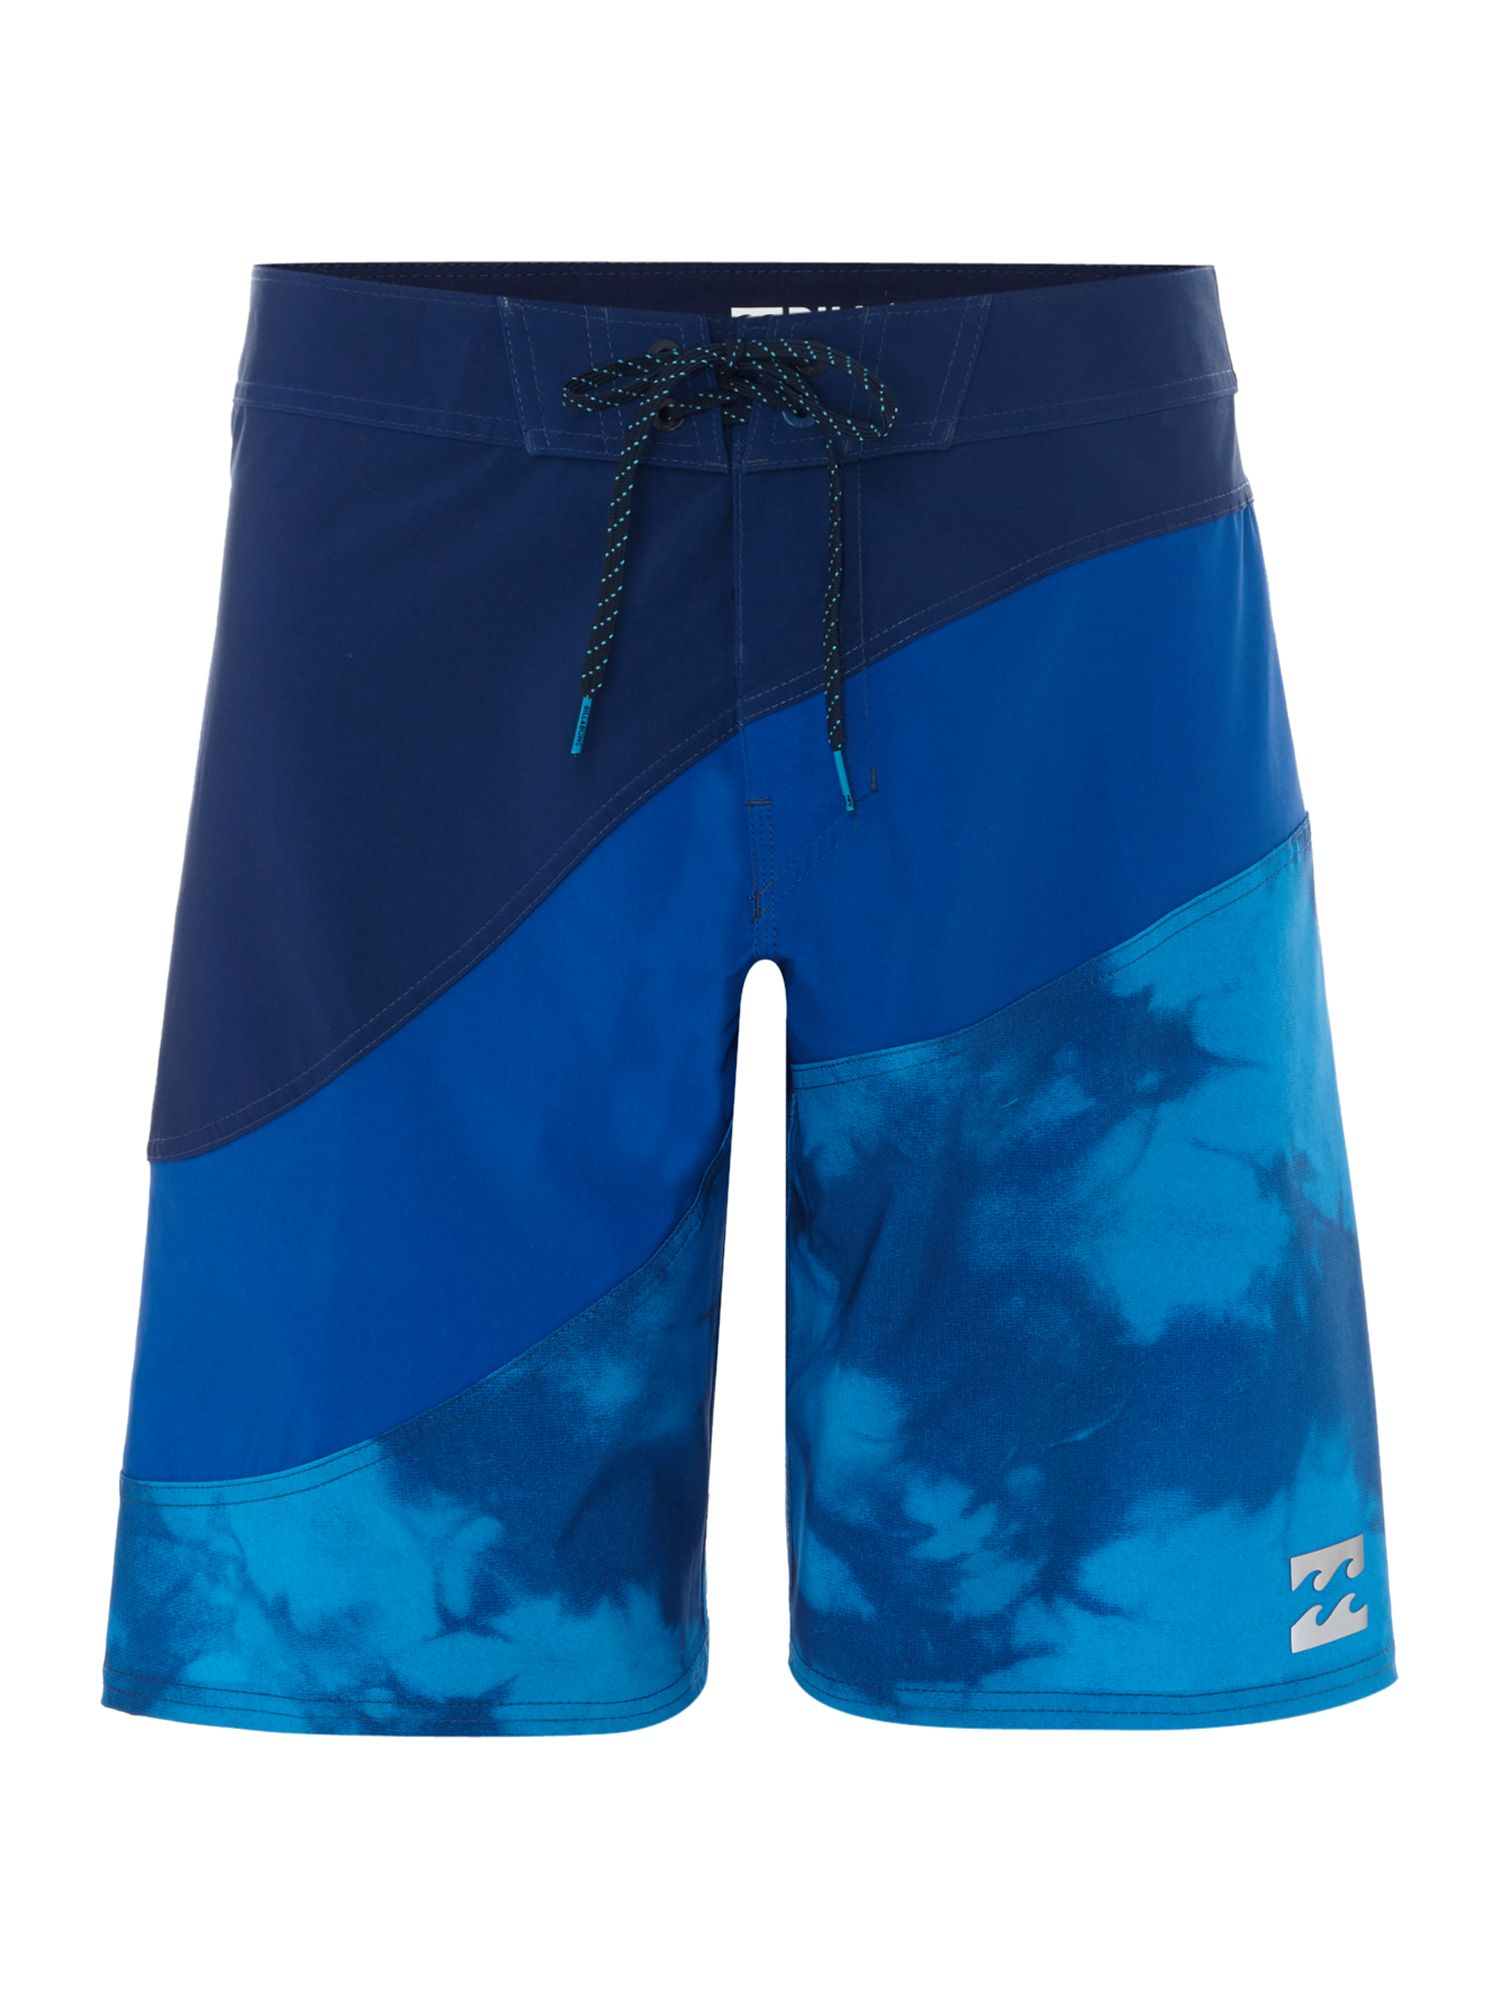 Men's Billabong Core Fit Surf Short, Blue